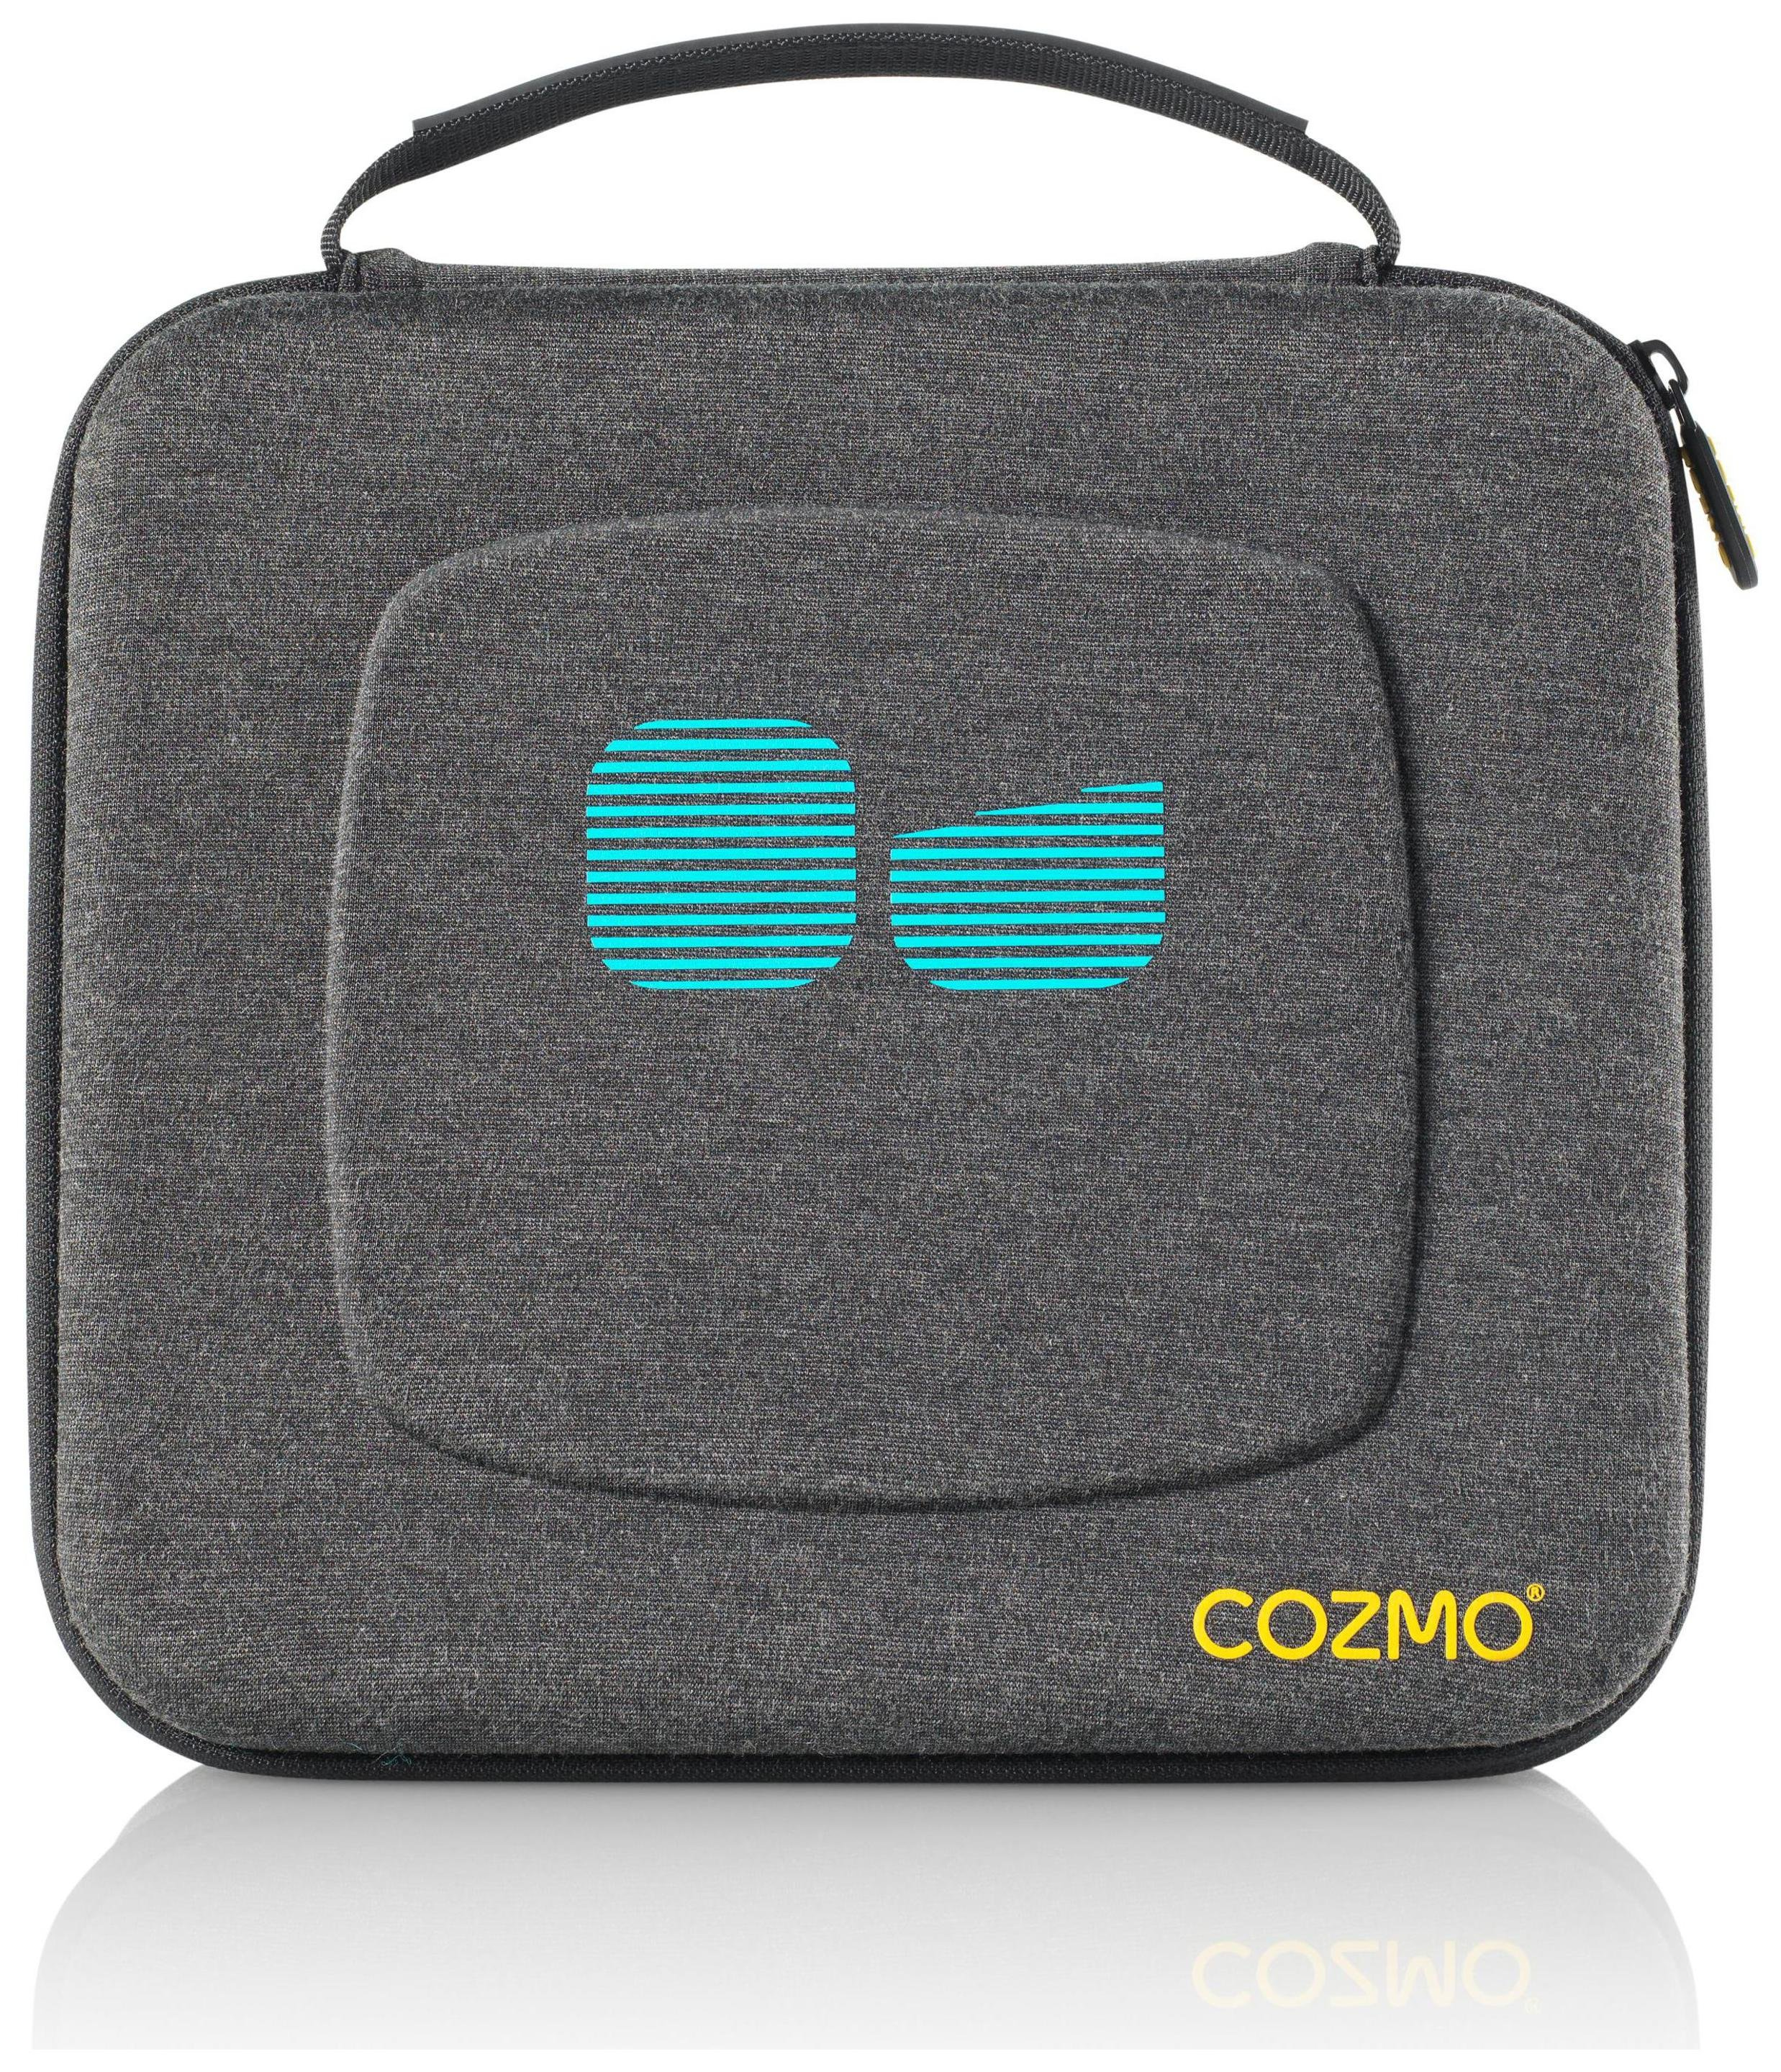 Image of Cozmo Carry Case